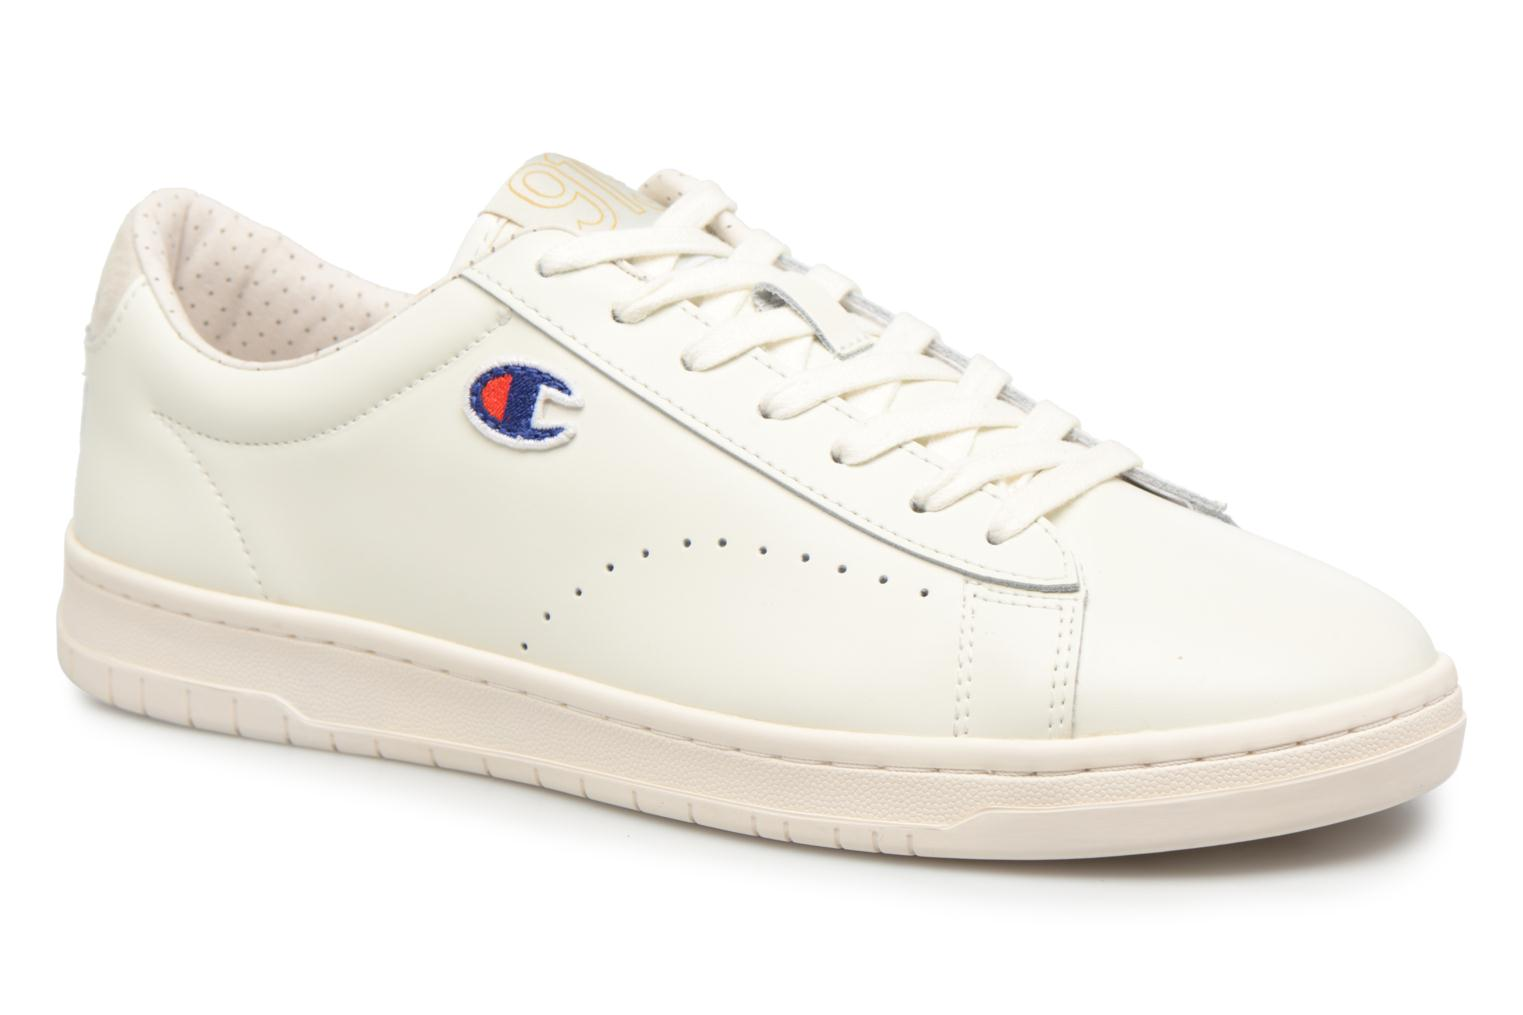 Low Cut Shoe 919 LOW PATCH LEATHER by Champion